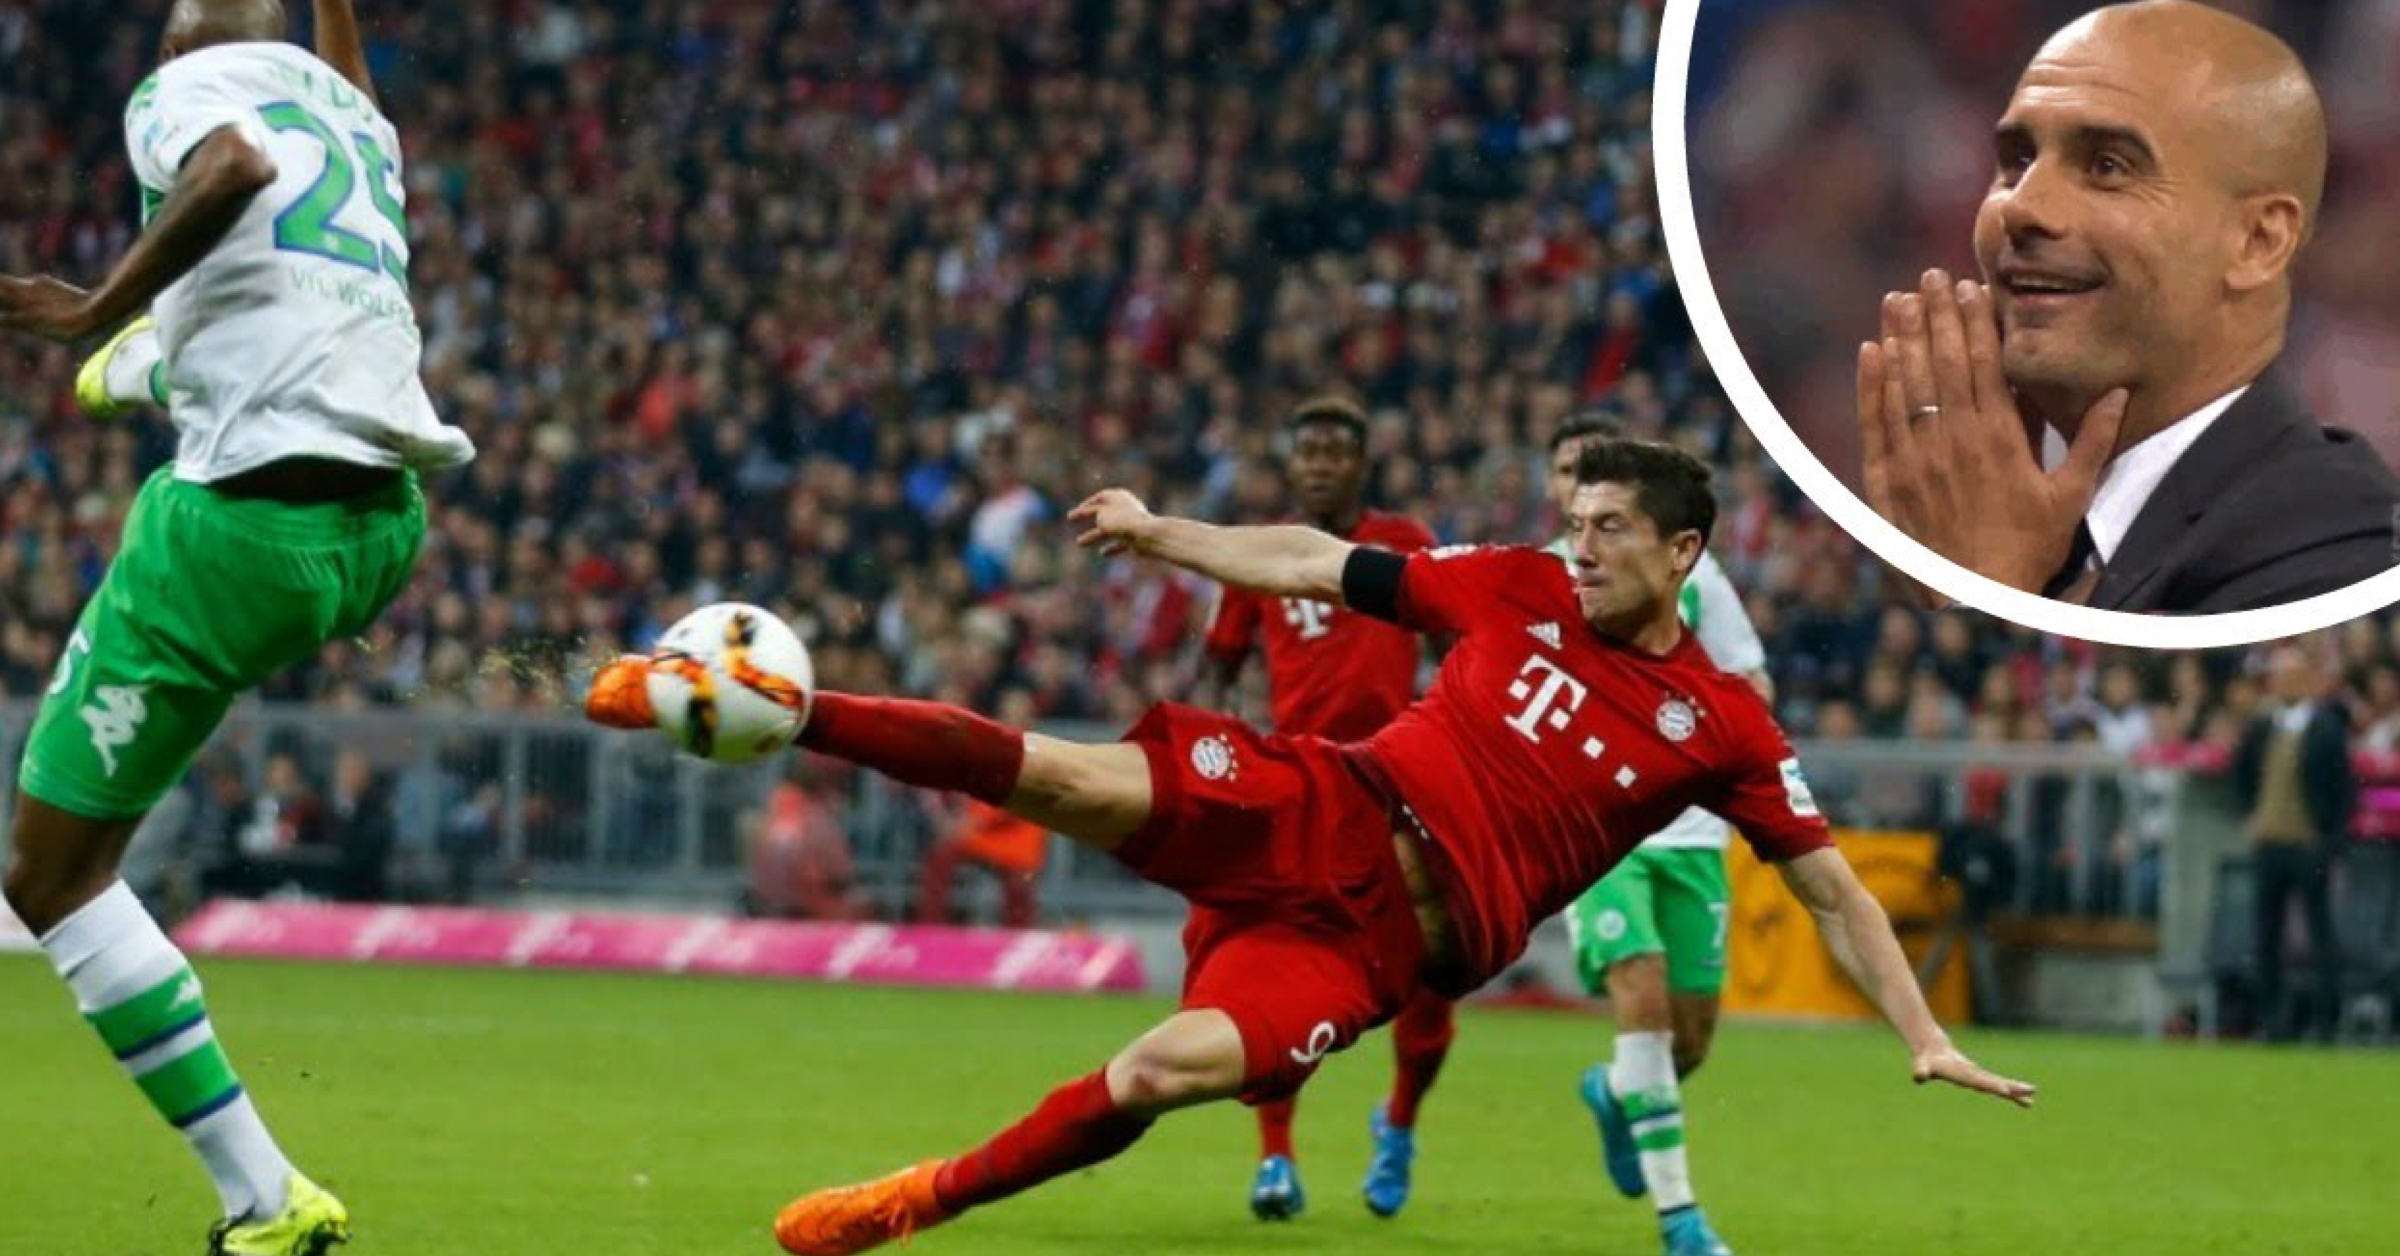 WATCH: It's Two Years To The Day Since Robert Lewandowski Scored 5 Goals In 9 Minutes